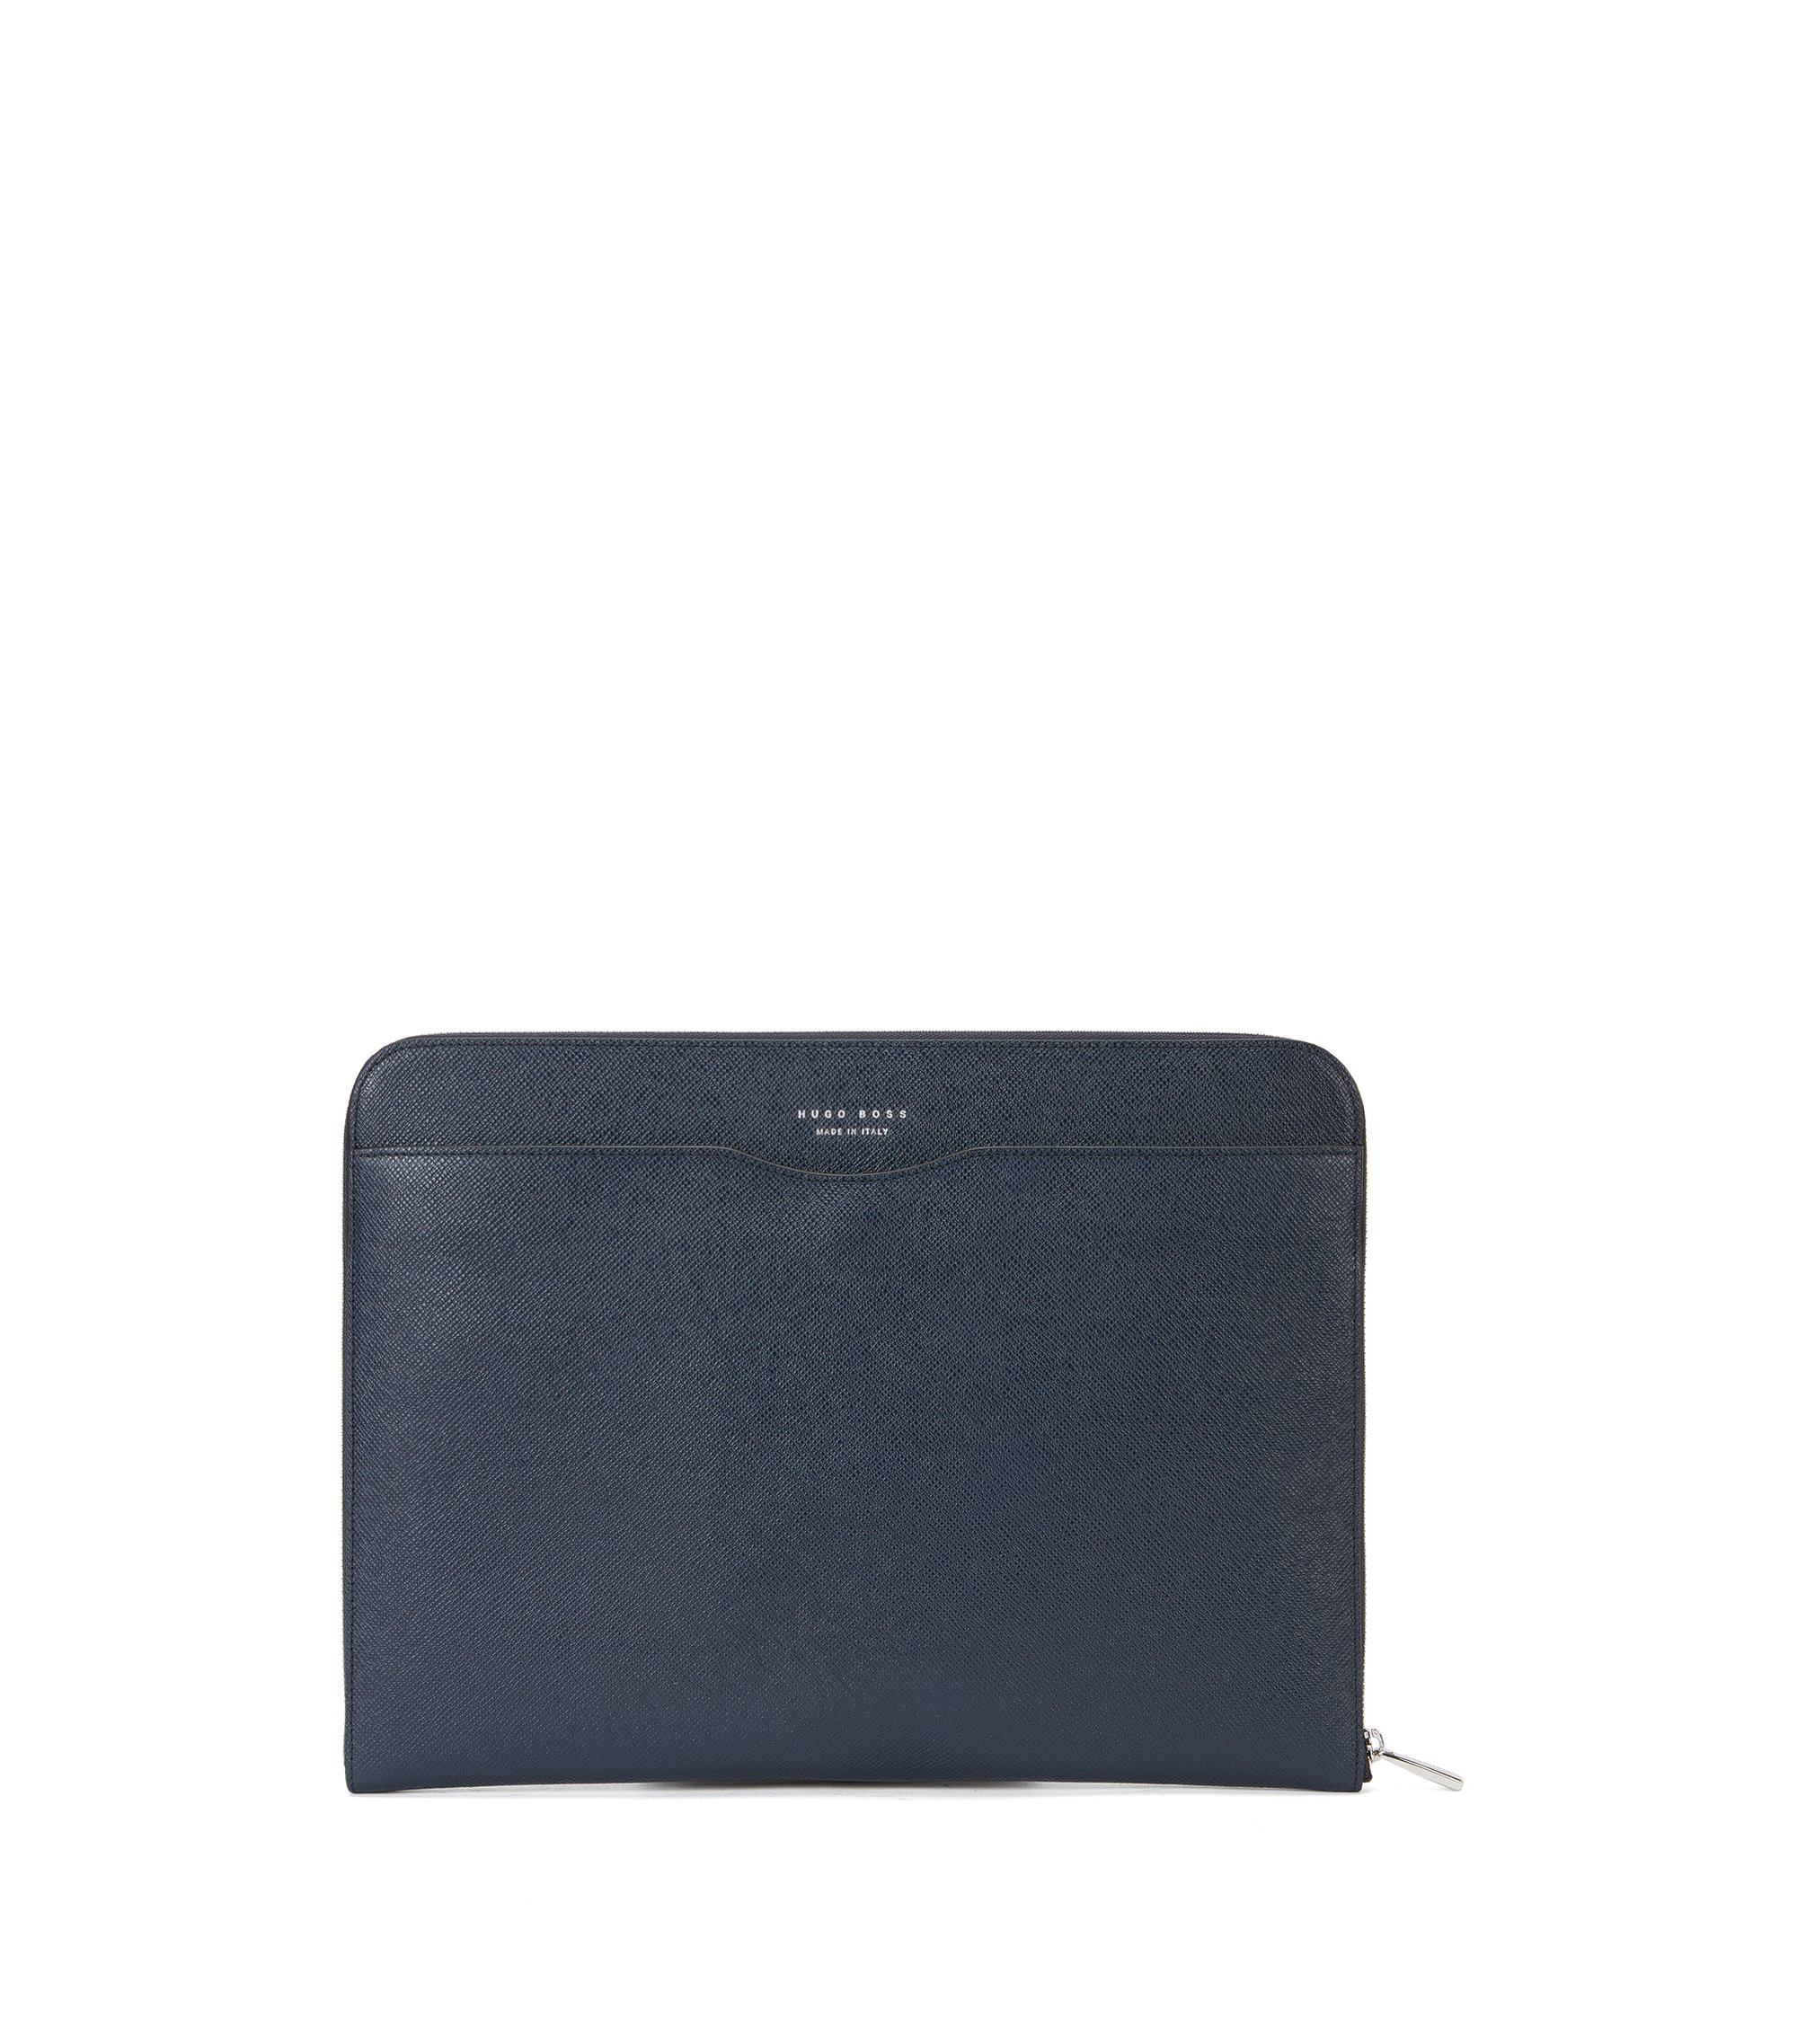 Porte-document de la collection Signature en cuir palmellato, Bleu foncé